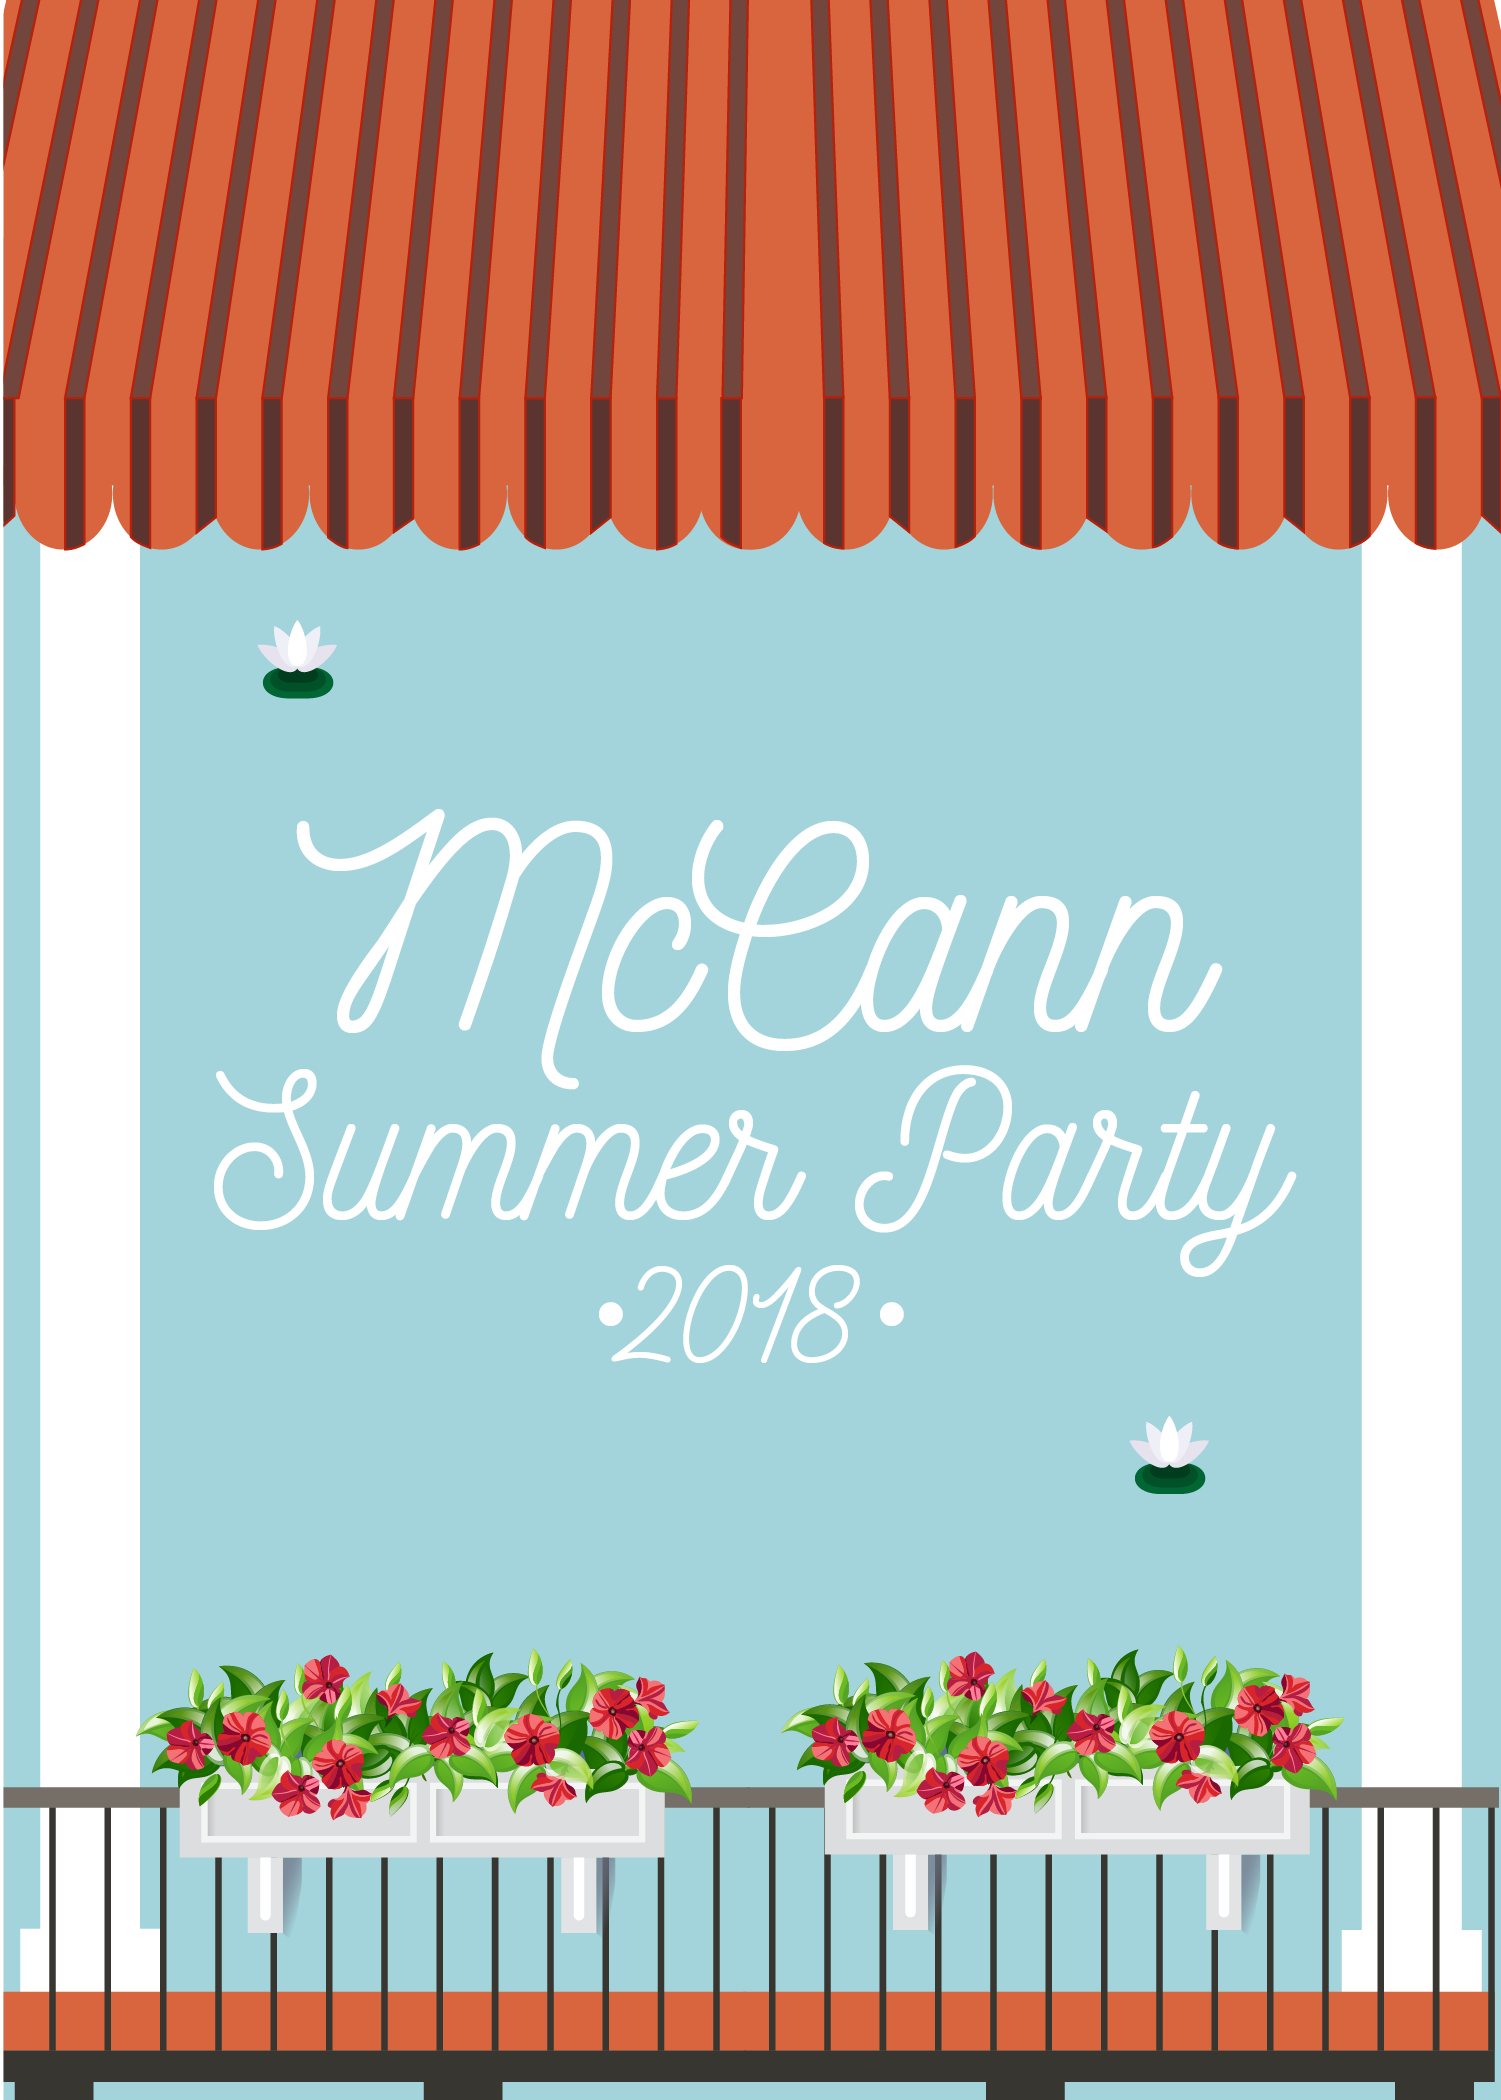 McCann_SummerParty-03.png